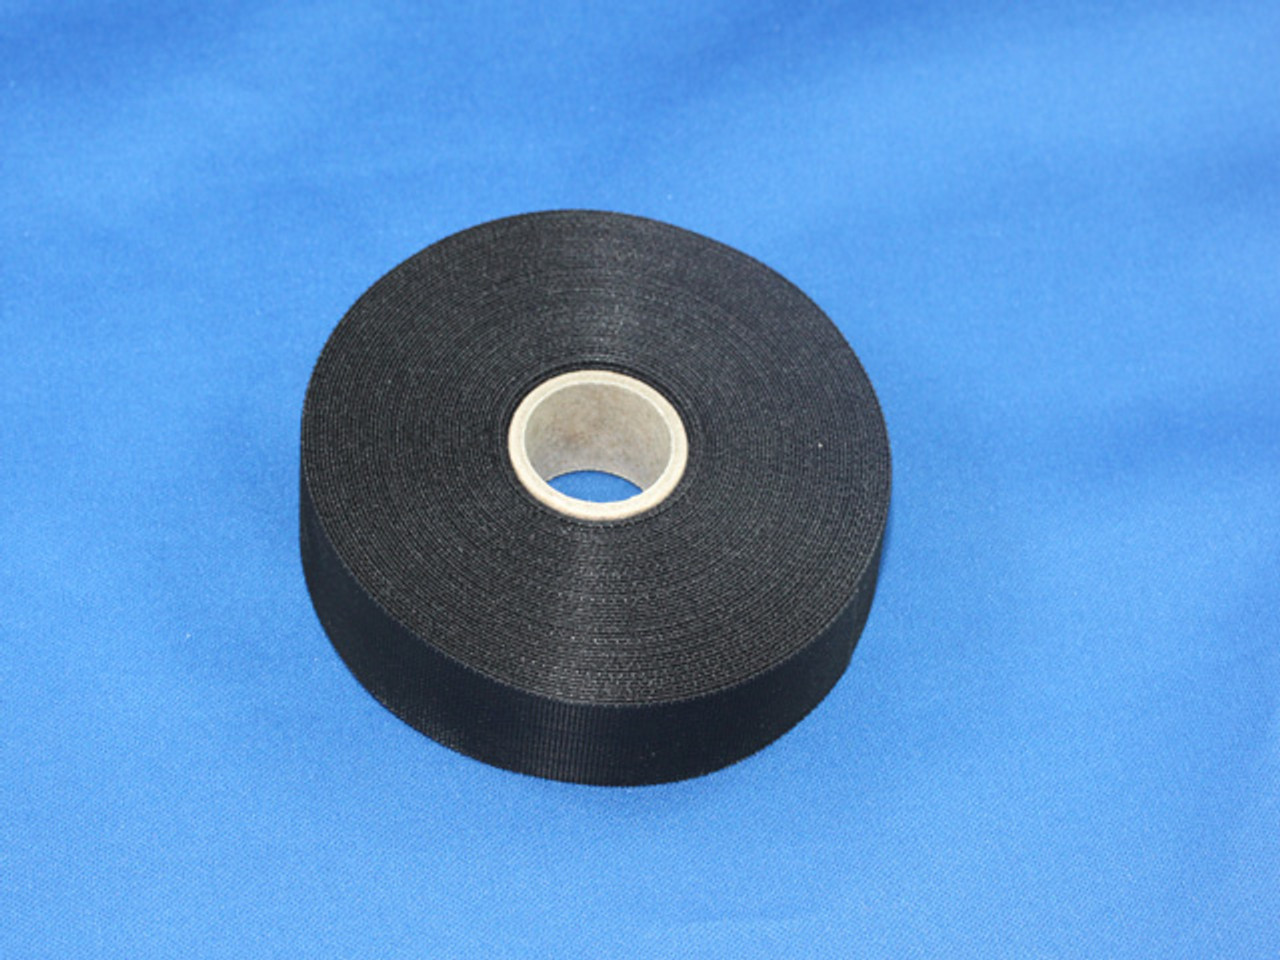 Product image for 10M Roll Velcro Cable Tie | CX Computer Superstore